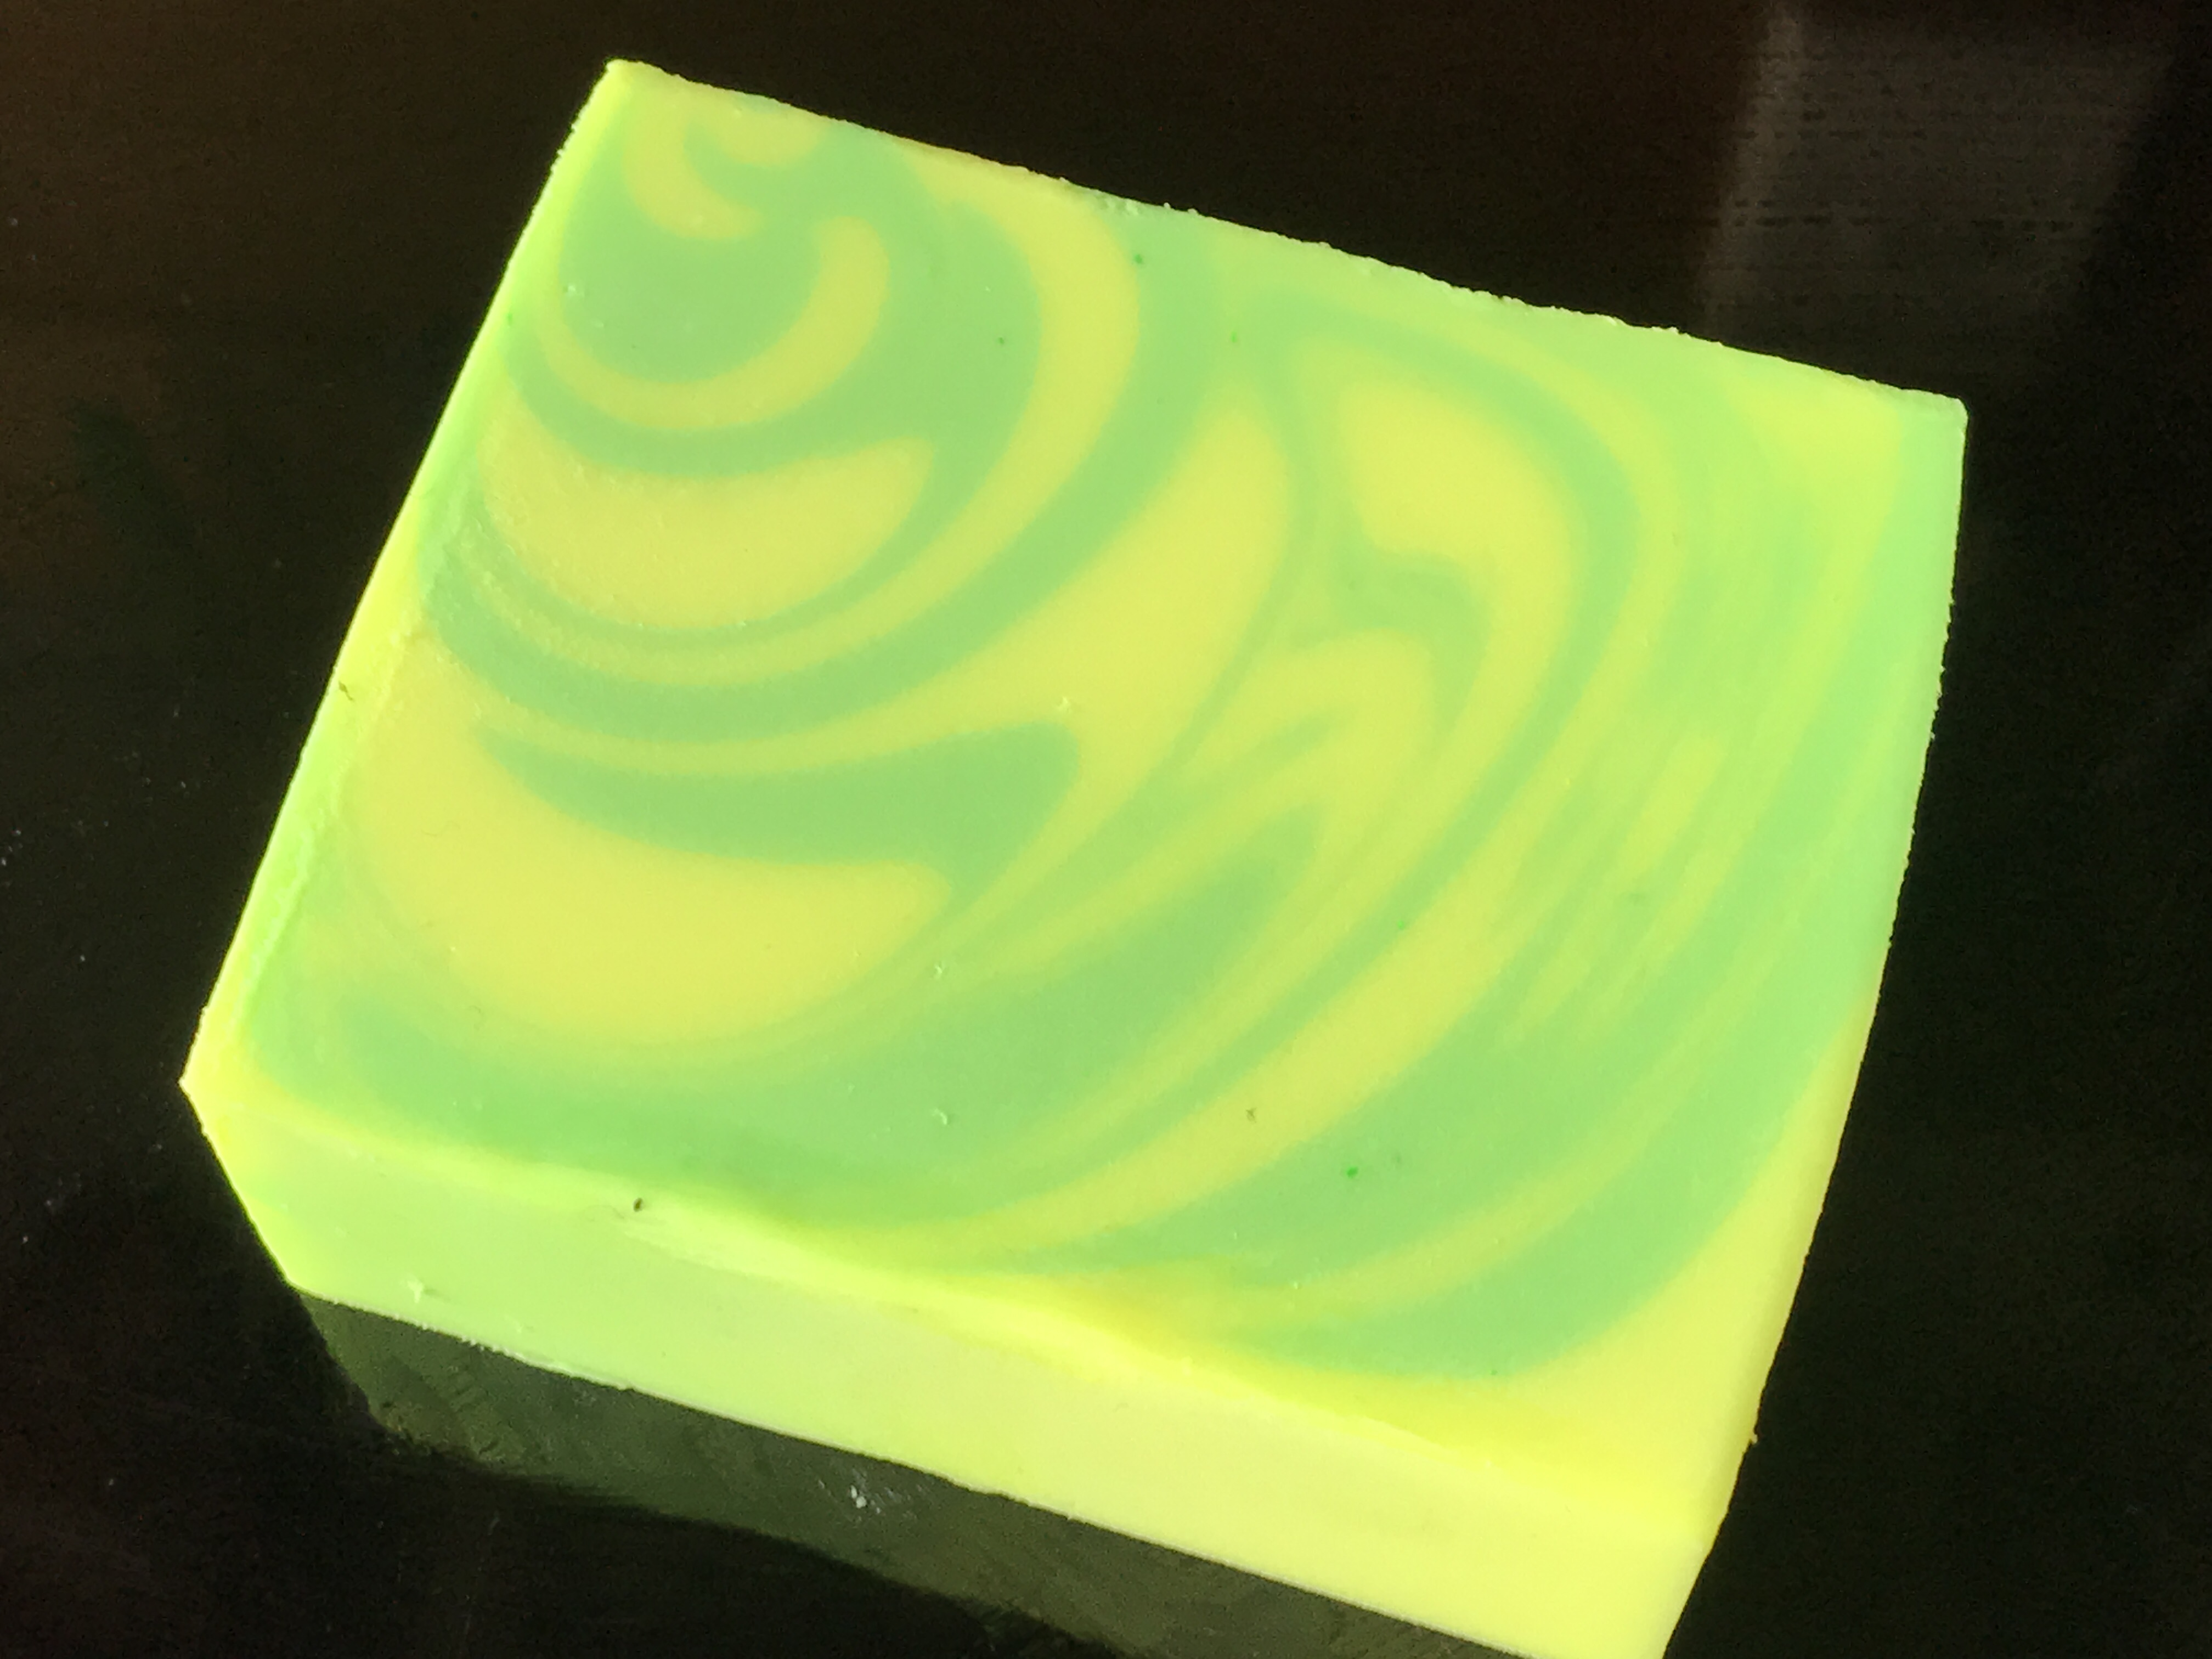 yellow green neon swirl